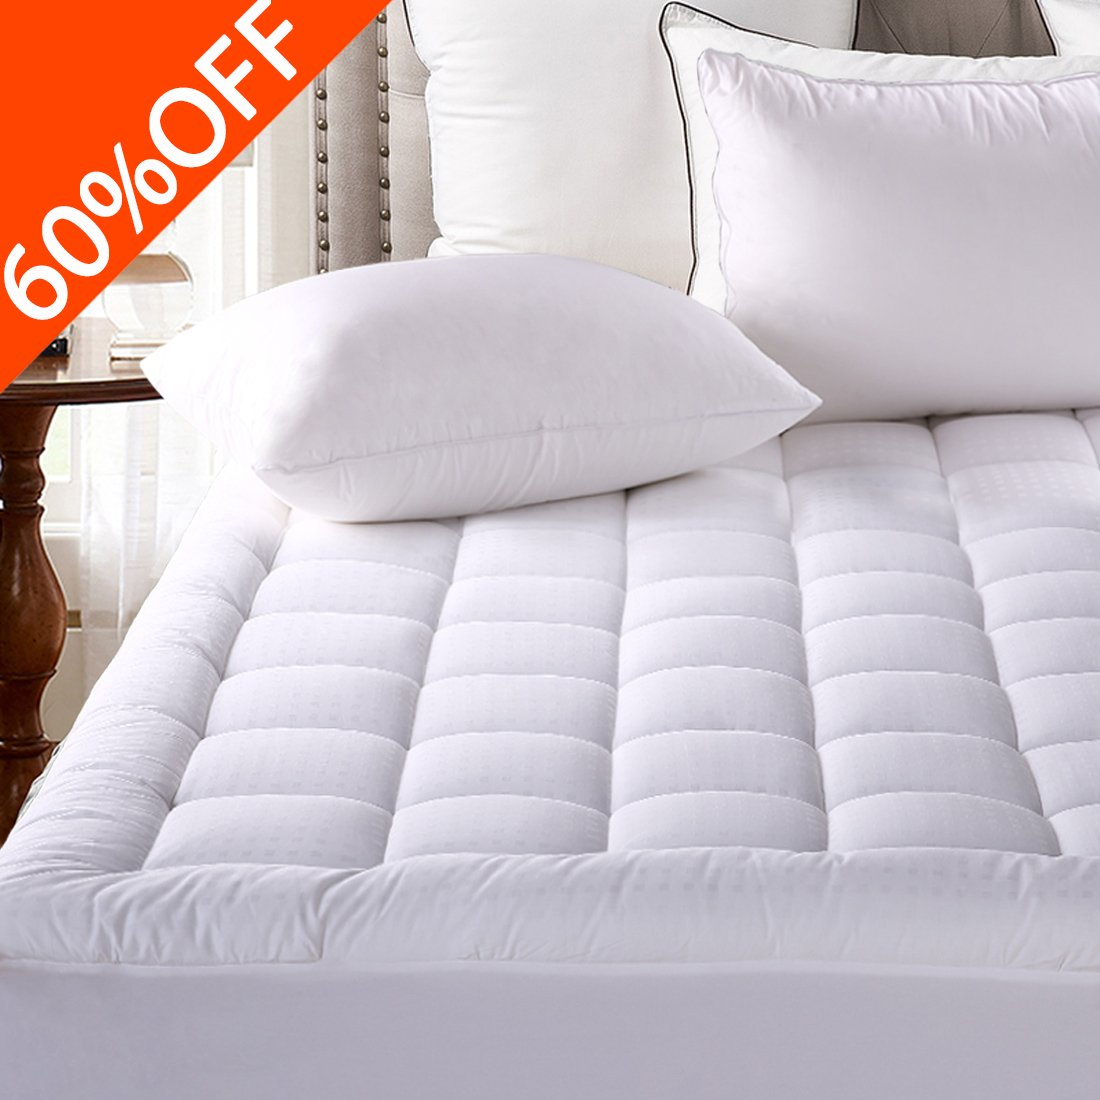 infused bedding gel brookside n home cover toppers decor xl memory bath b pads the mattress depot foam topper twin